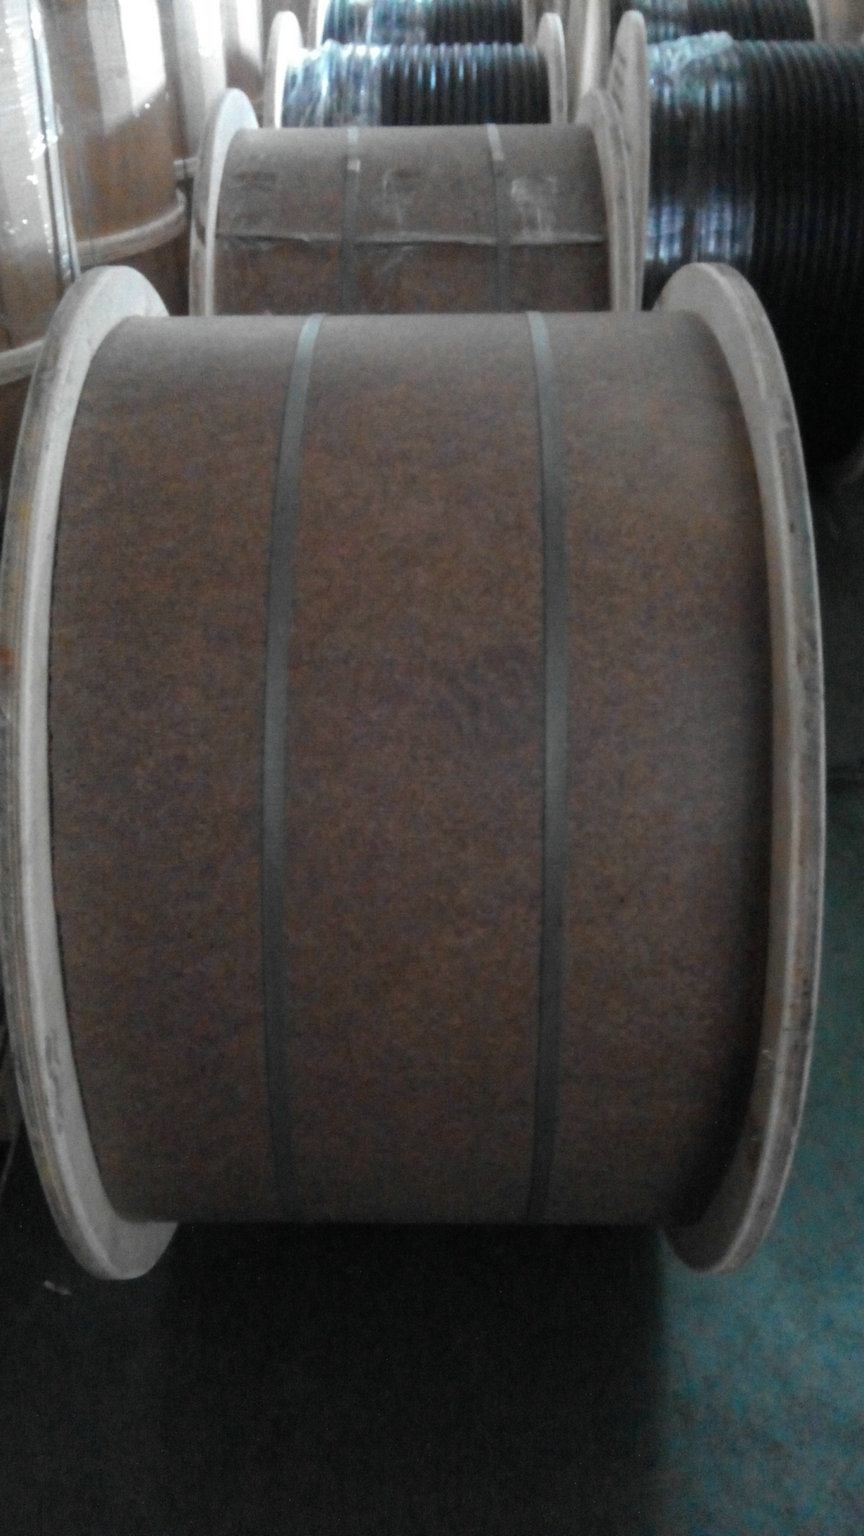 Coaxial Cable CATV Rg500 Trunk Cable